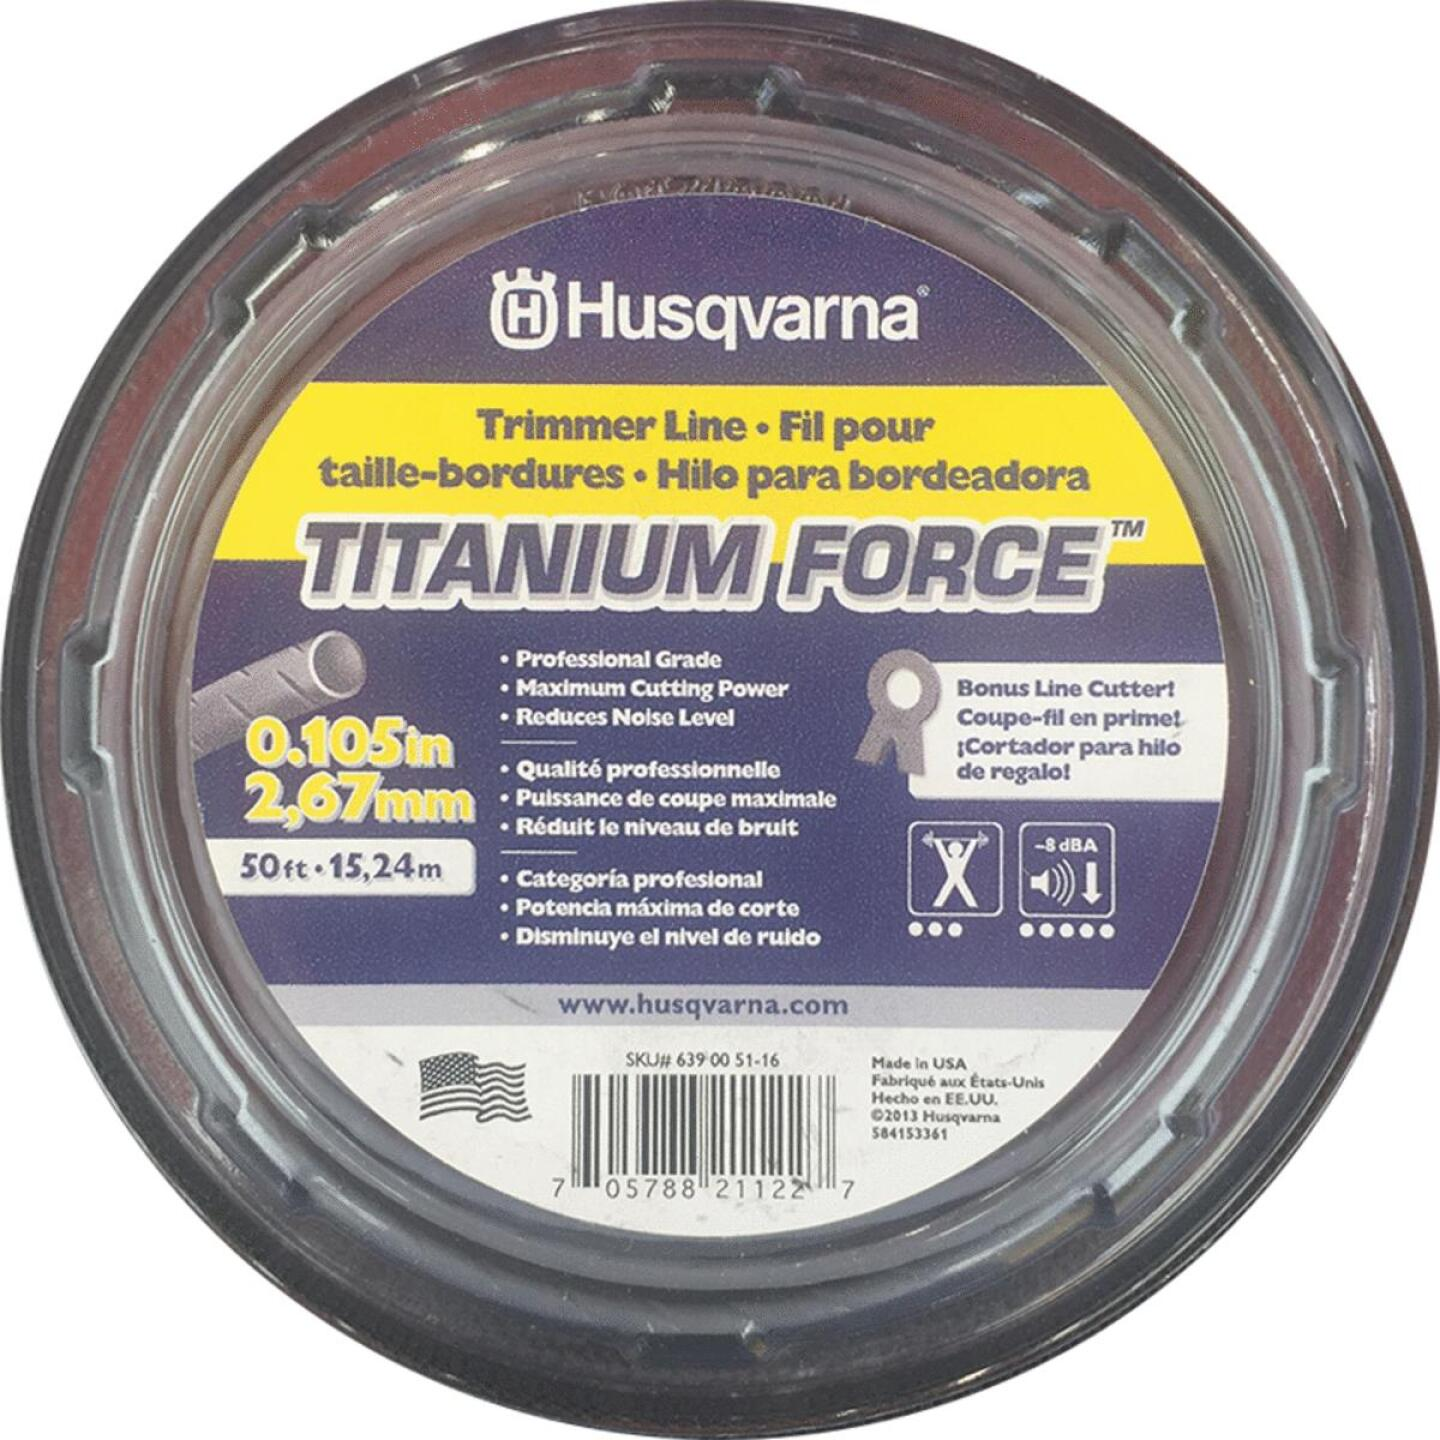 Husqvarna Titanium Force 0.105 In. x 50 Ft. Trimmer Line Image 1